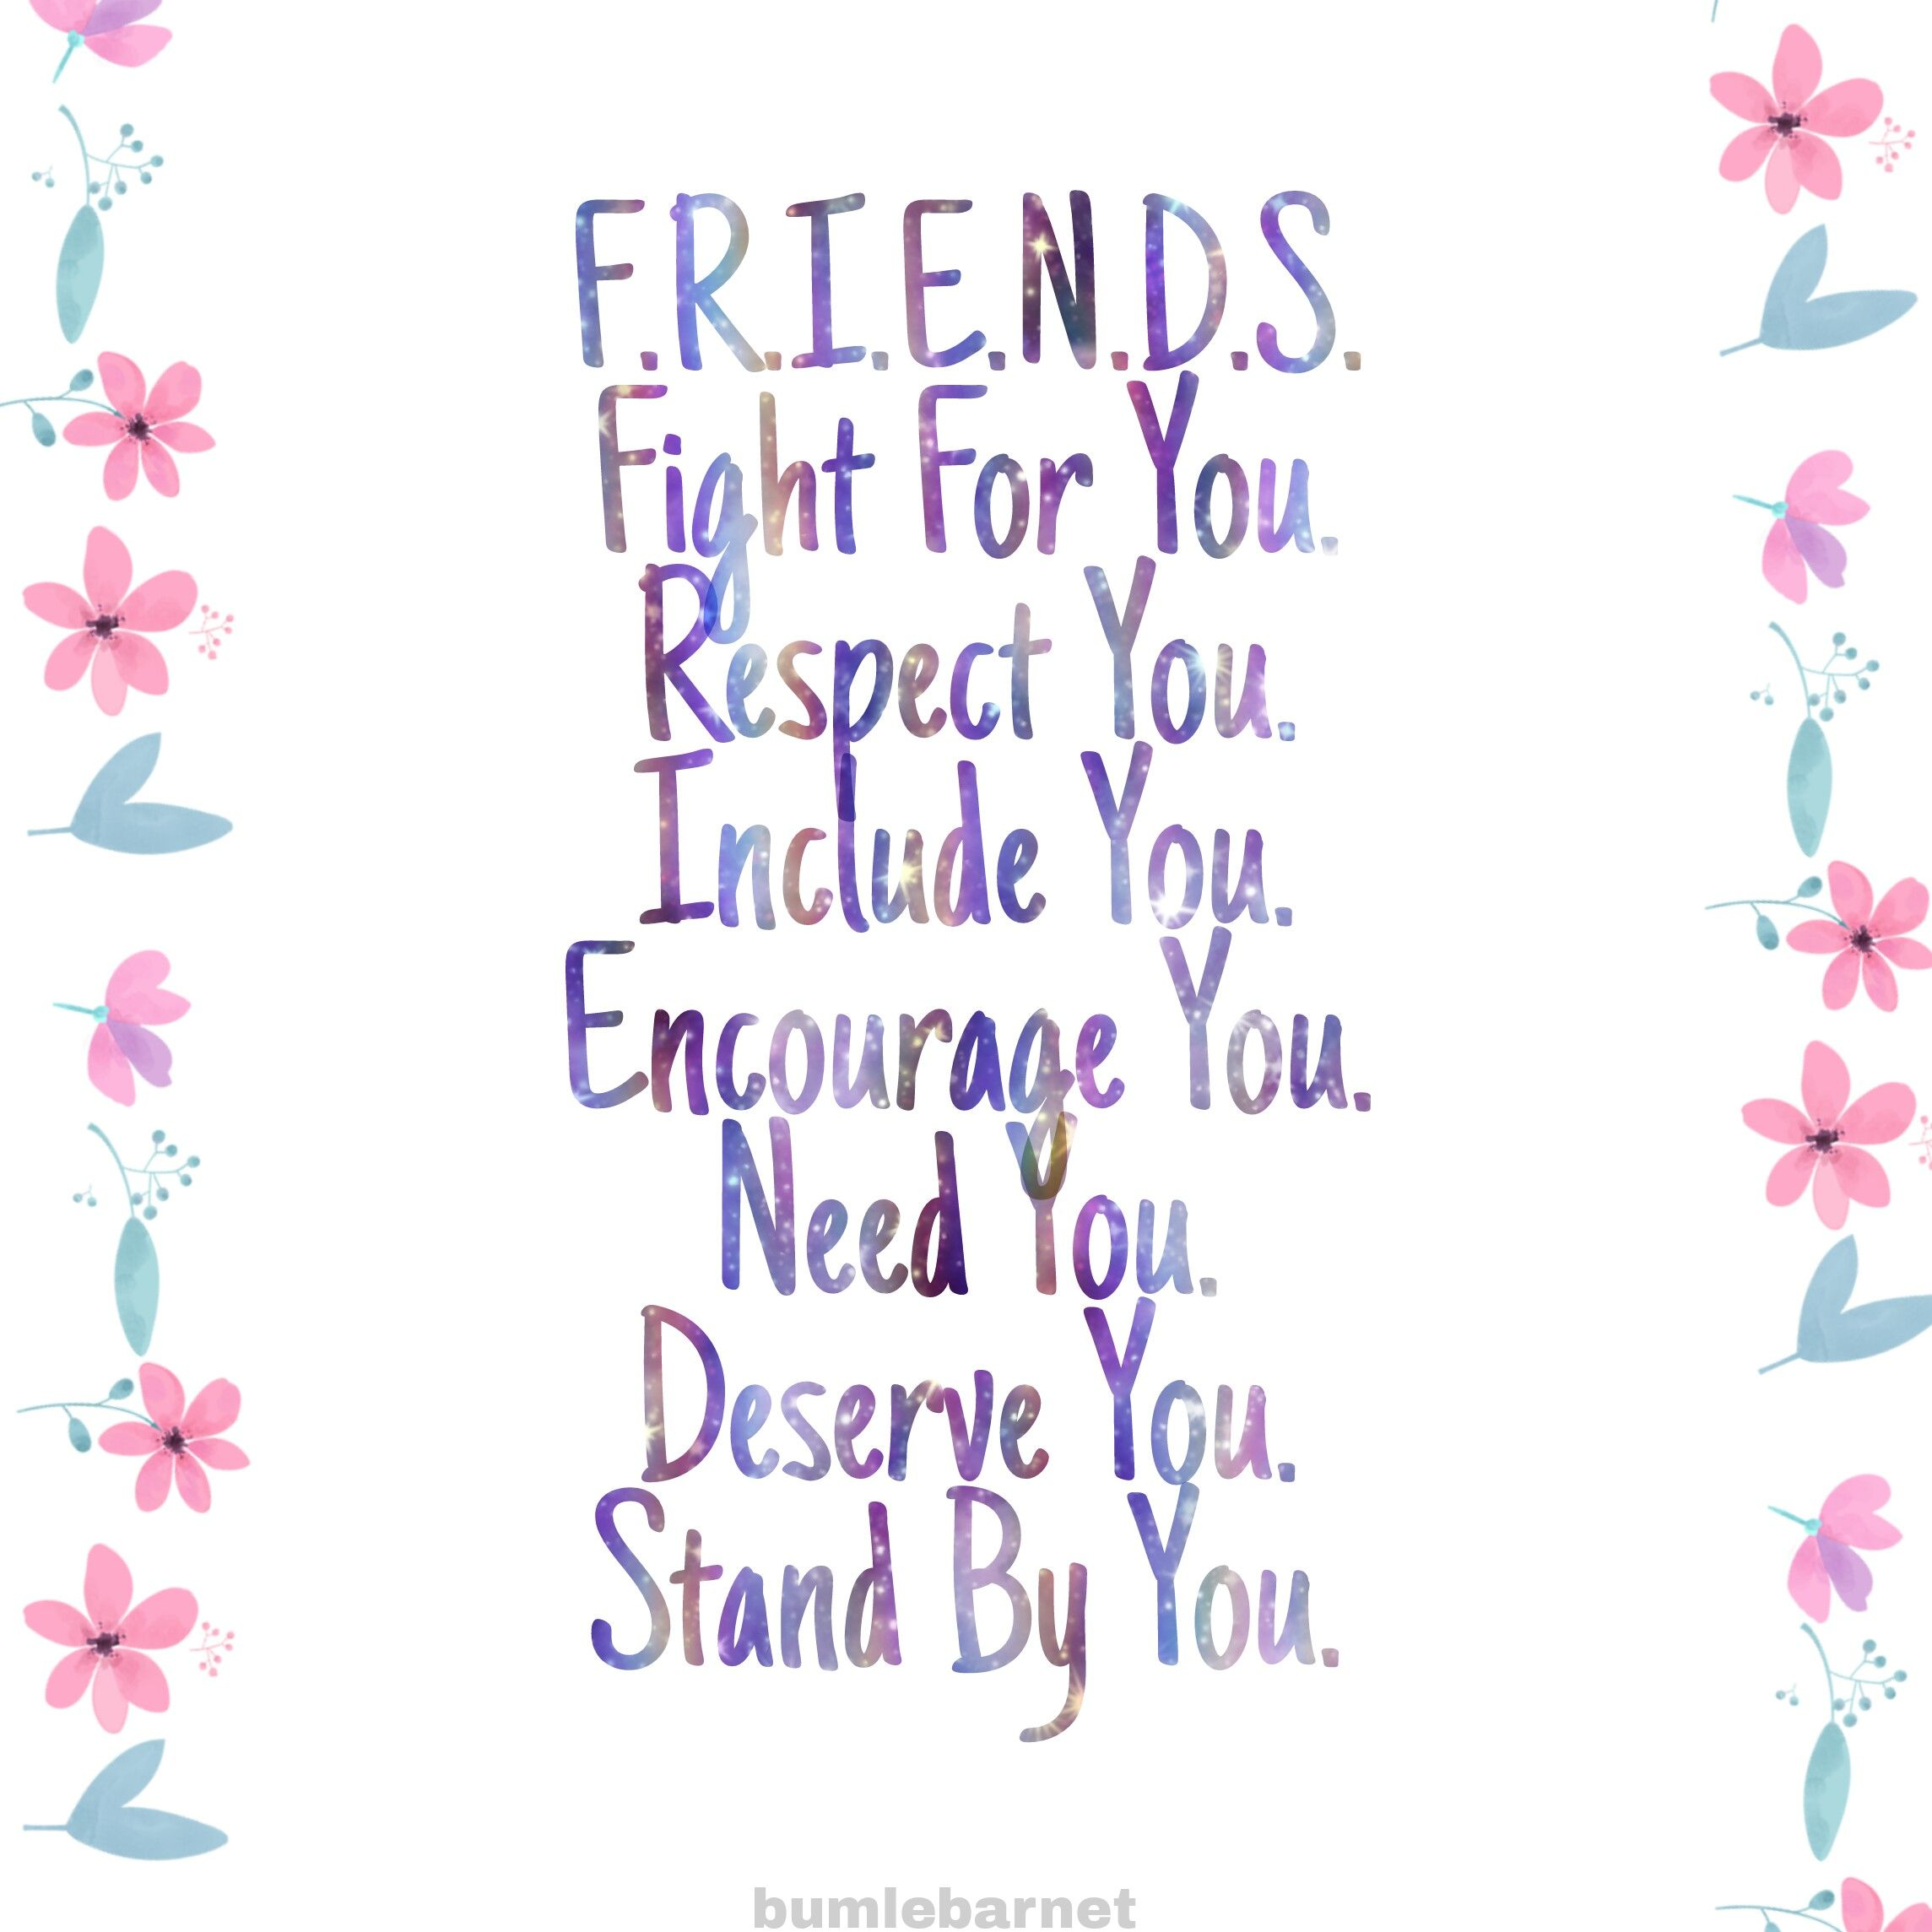 Not All Friends Go By This I M Gonna Print It Out And Shove It In Their Stuff So They Ll Just Magically Friends Quotes Best Friend Quotes Friendship Quotes